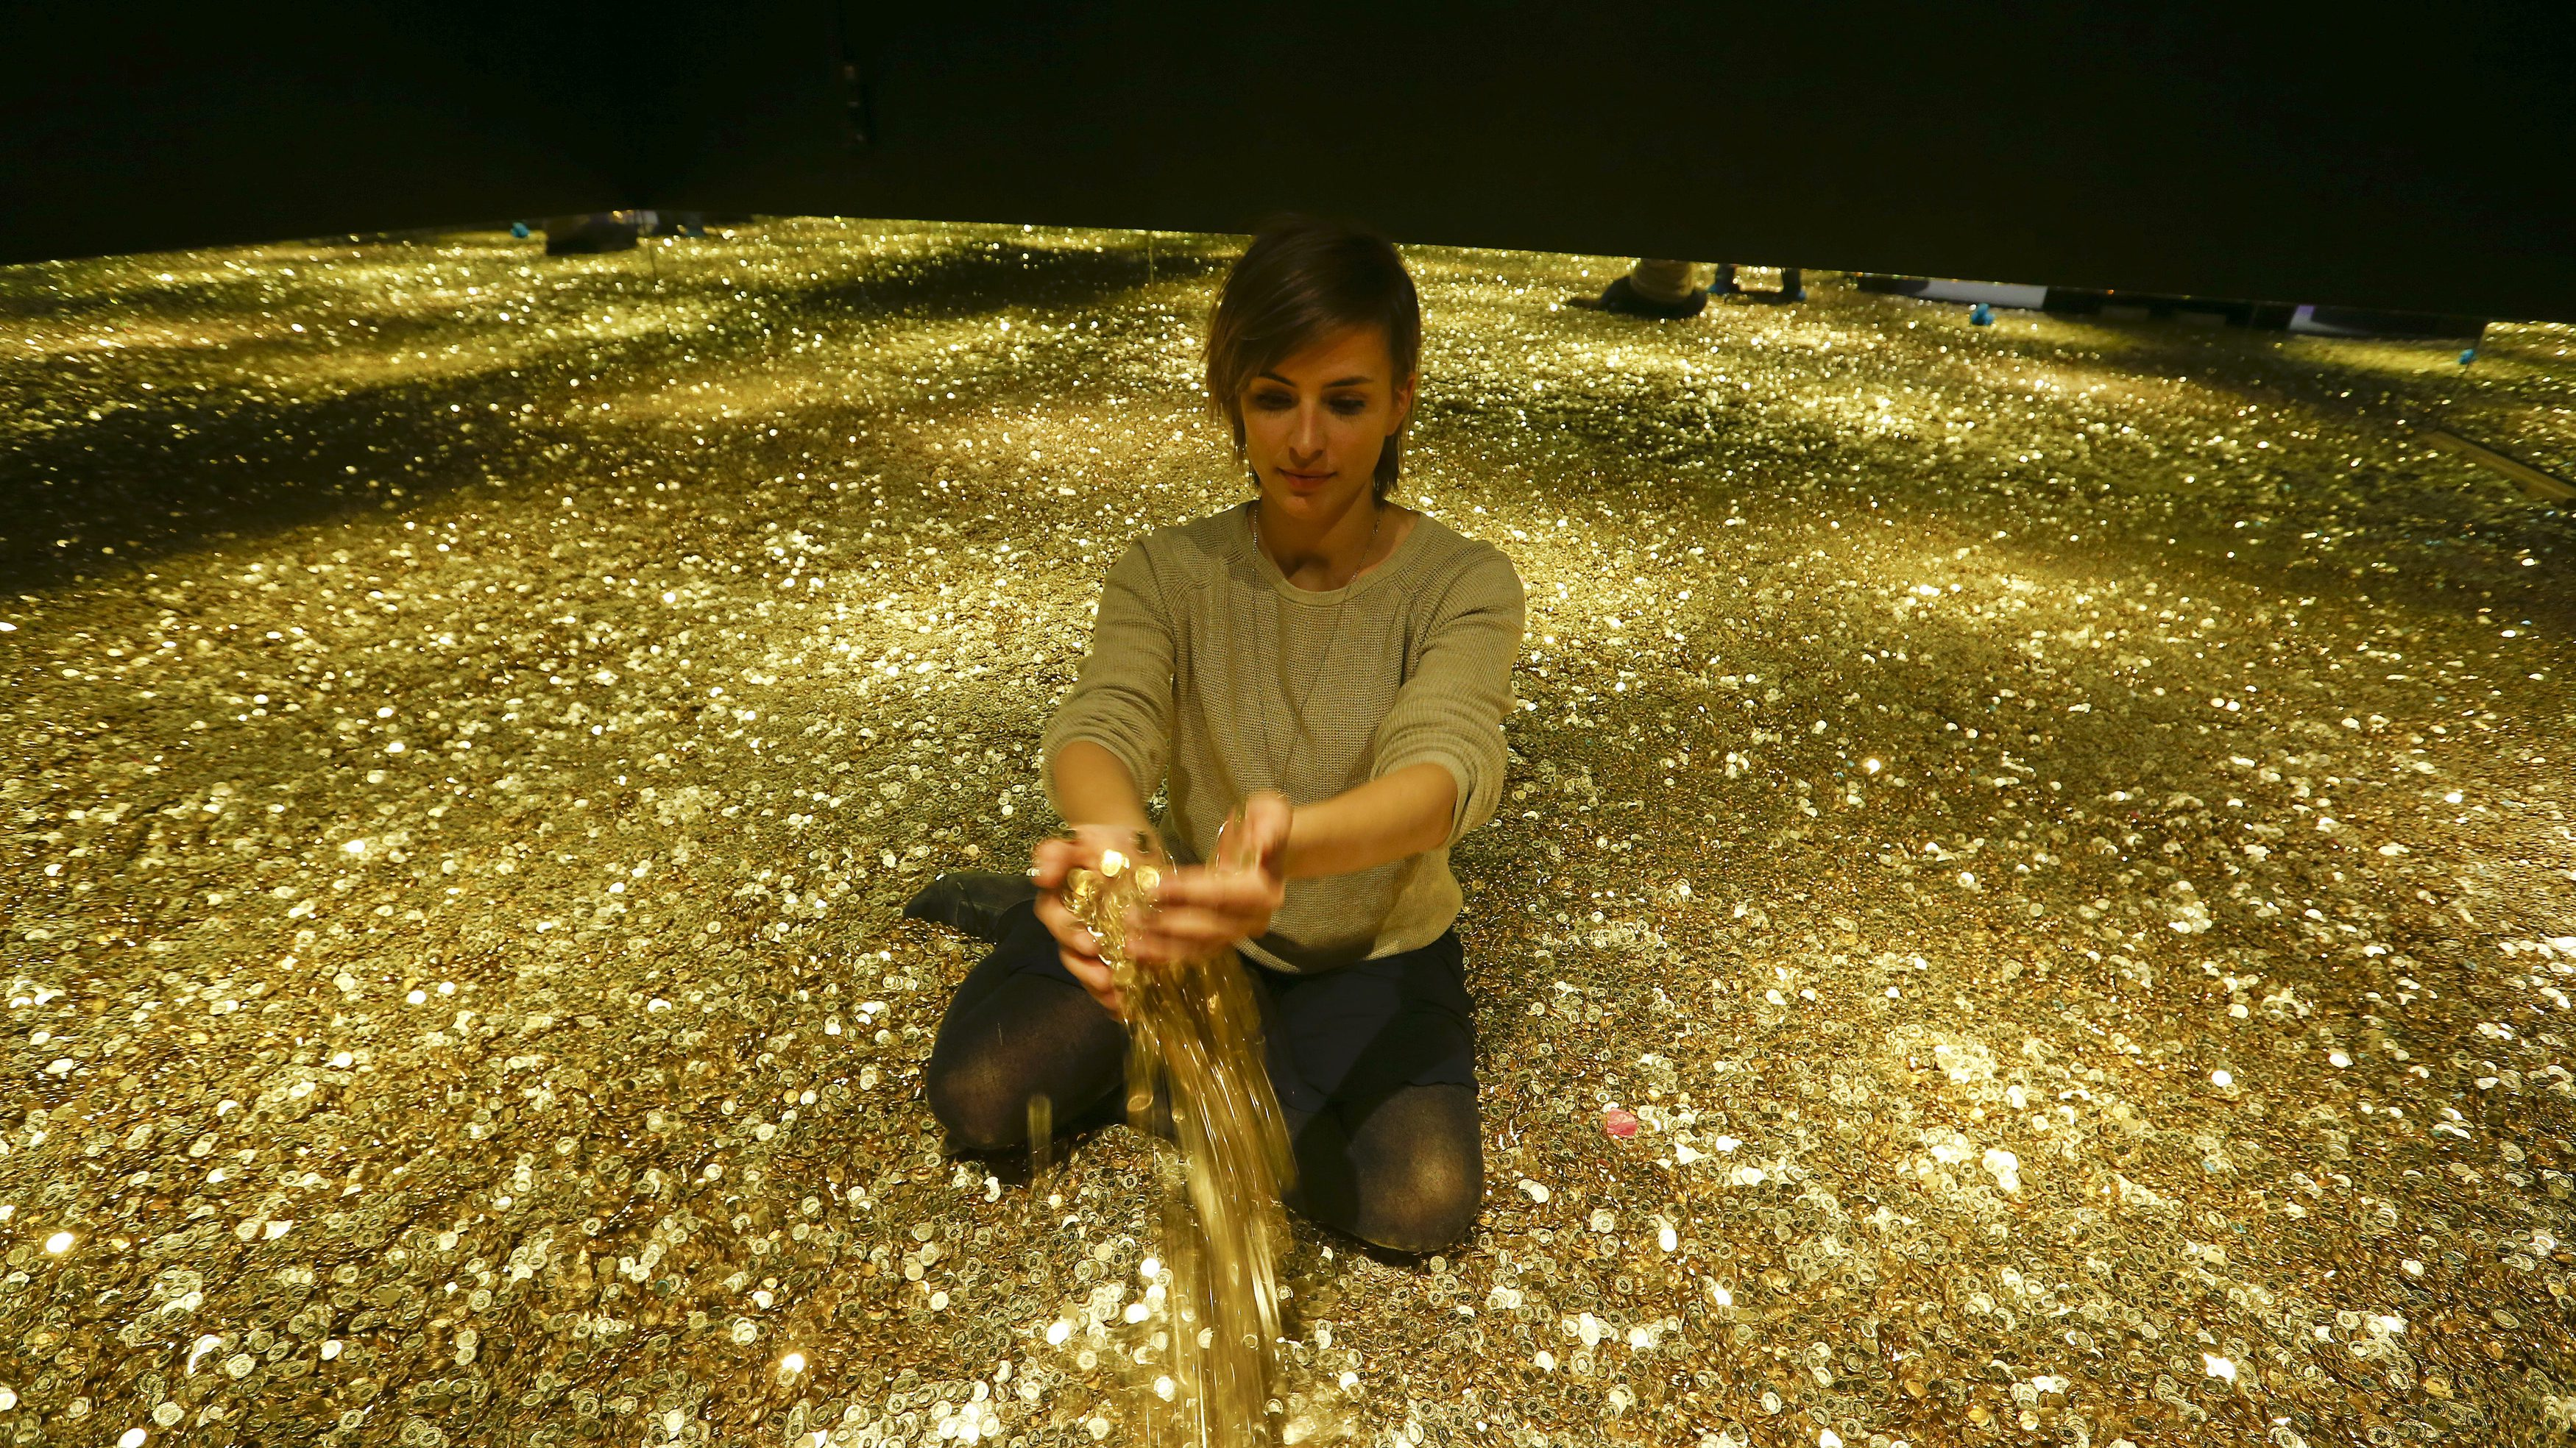 "Sonja Enz of the Stapferhaus, an event place for contemporary exhibitions, holds coins in her hands as she sits in a room filled with 4 million Swiss five cent coins during a media preview of the exhibition ""Geld - Jenseits von Gut und Boese"" (Money -beyond good and evil) in the town of Lenzburg west of Zurich November 14, 2014. The exhibition at the Stapferhaus is opened to the public from November 15 to November 29, 2015.  REUTERS/Arnd Wiegmann (SWITZERLAND  - Tags: SOCIETY ENTERTAINMENT TPX IMAGES OF THE DAY)   - RTR4E4WT"